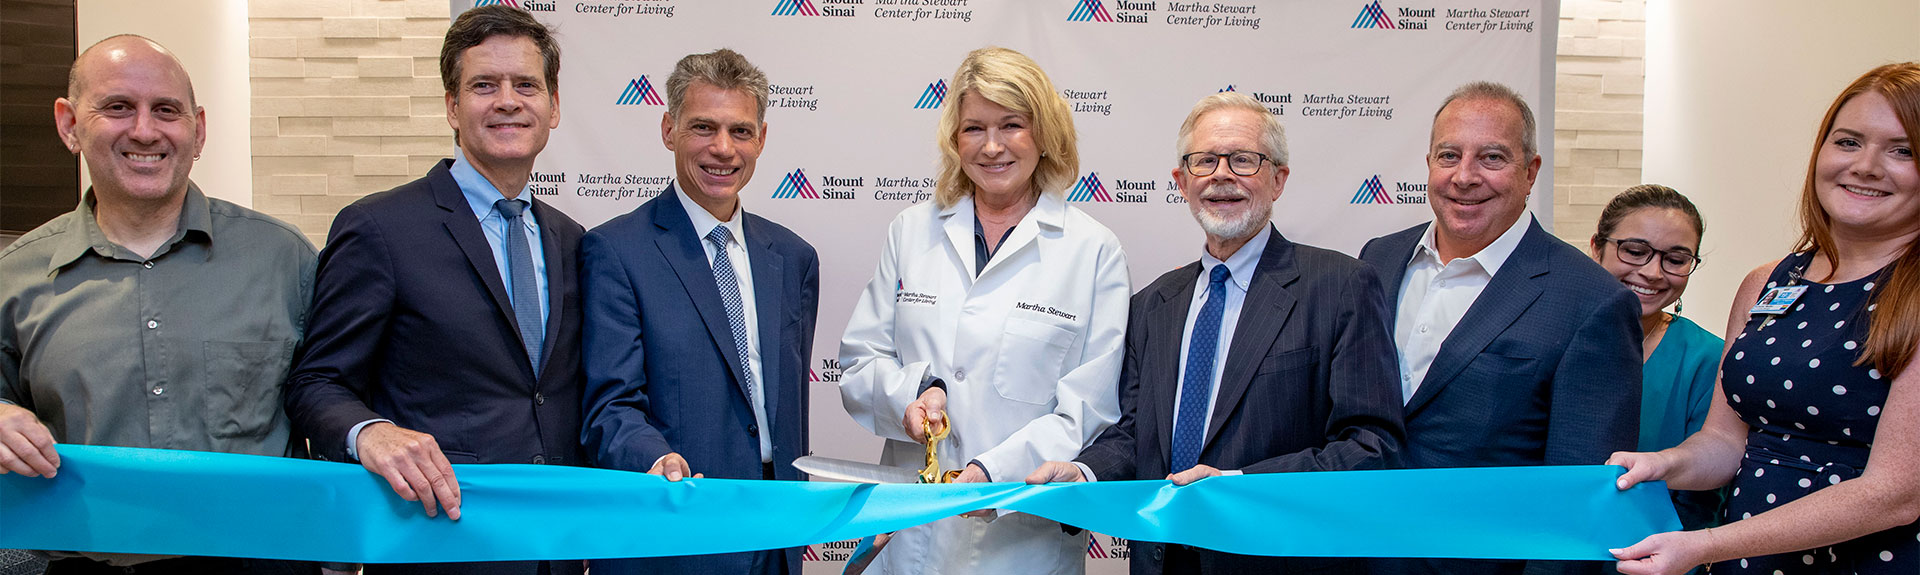 Martha Stewart cuts ribbon, officially opening the Martha Stewart Center for Living at Union Square